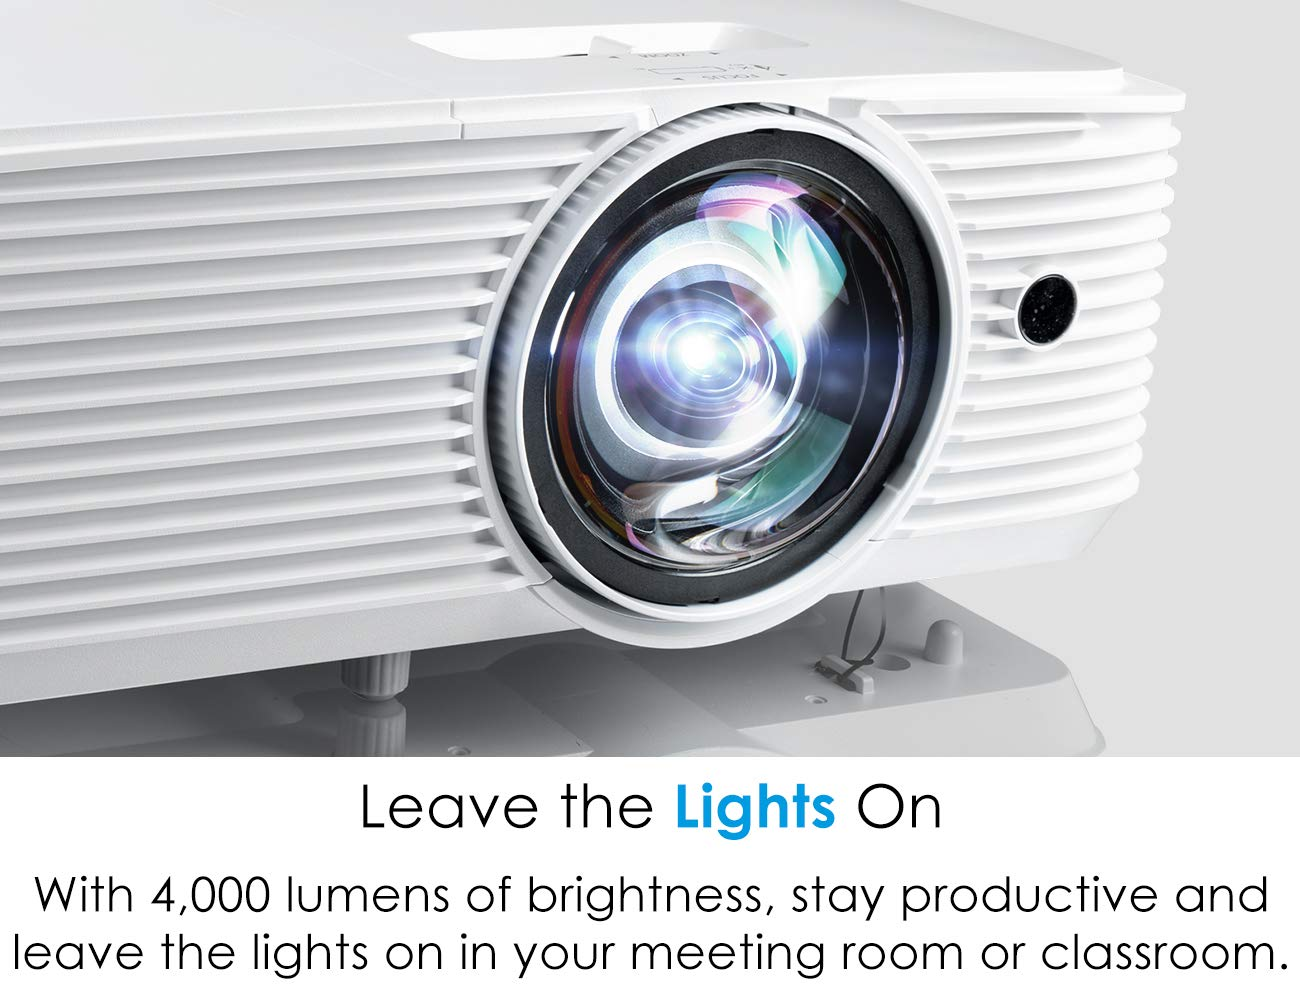 Optoma EH412ST Short Throw 1080P DLP Professional Projector | Super Bright 4000 Lumens | Business Presentations, Classrooms, or Meeting Rooms | 15,000 hour lamp life | Speaker Built In | Portable Size by Optoma (Image #5)